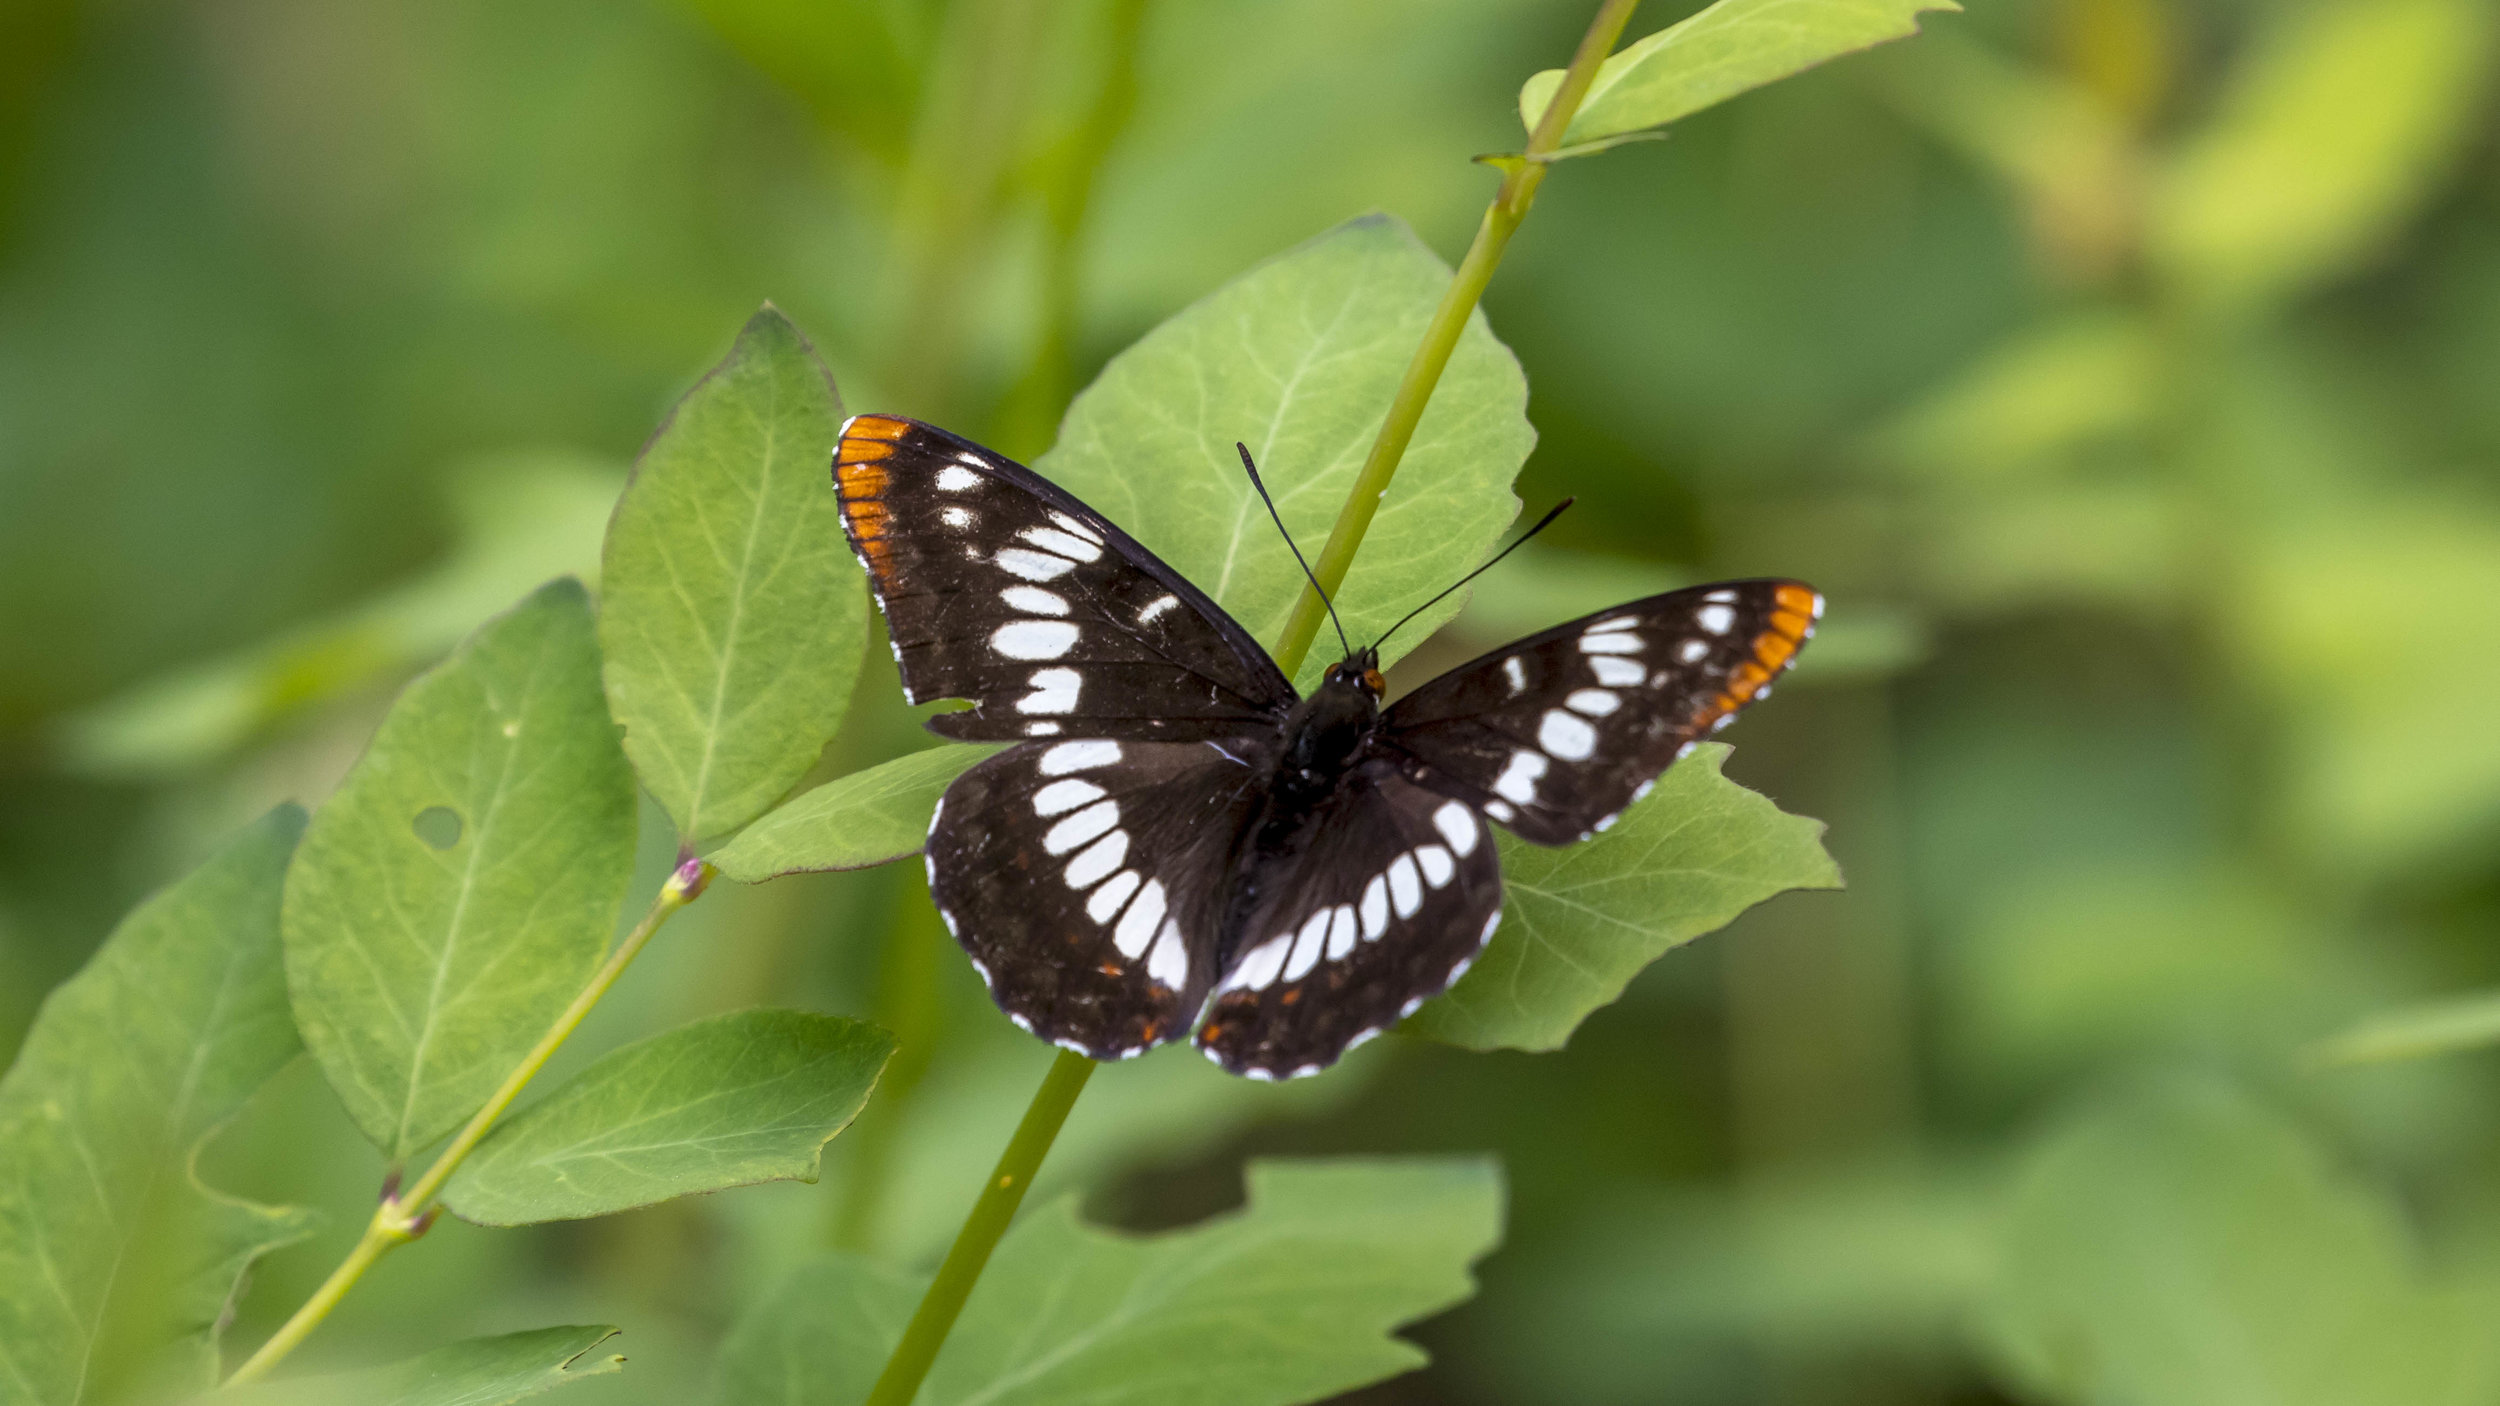 This Lorquin's Admiral smells using the tips of its antennae. Photo: Dave Rein